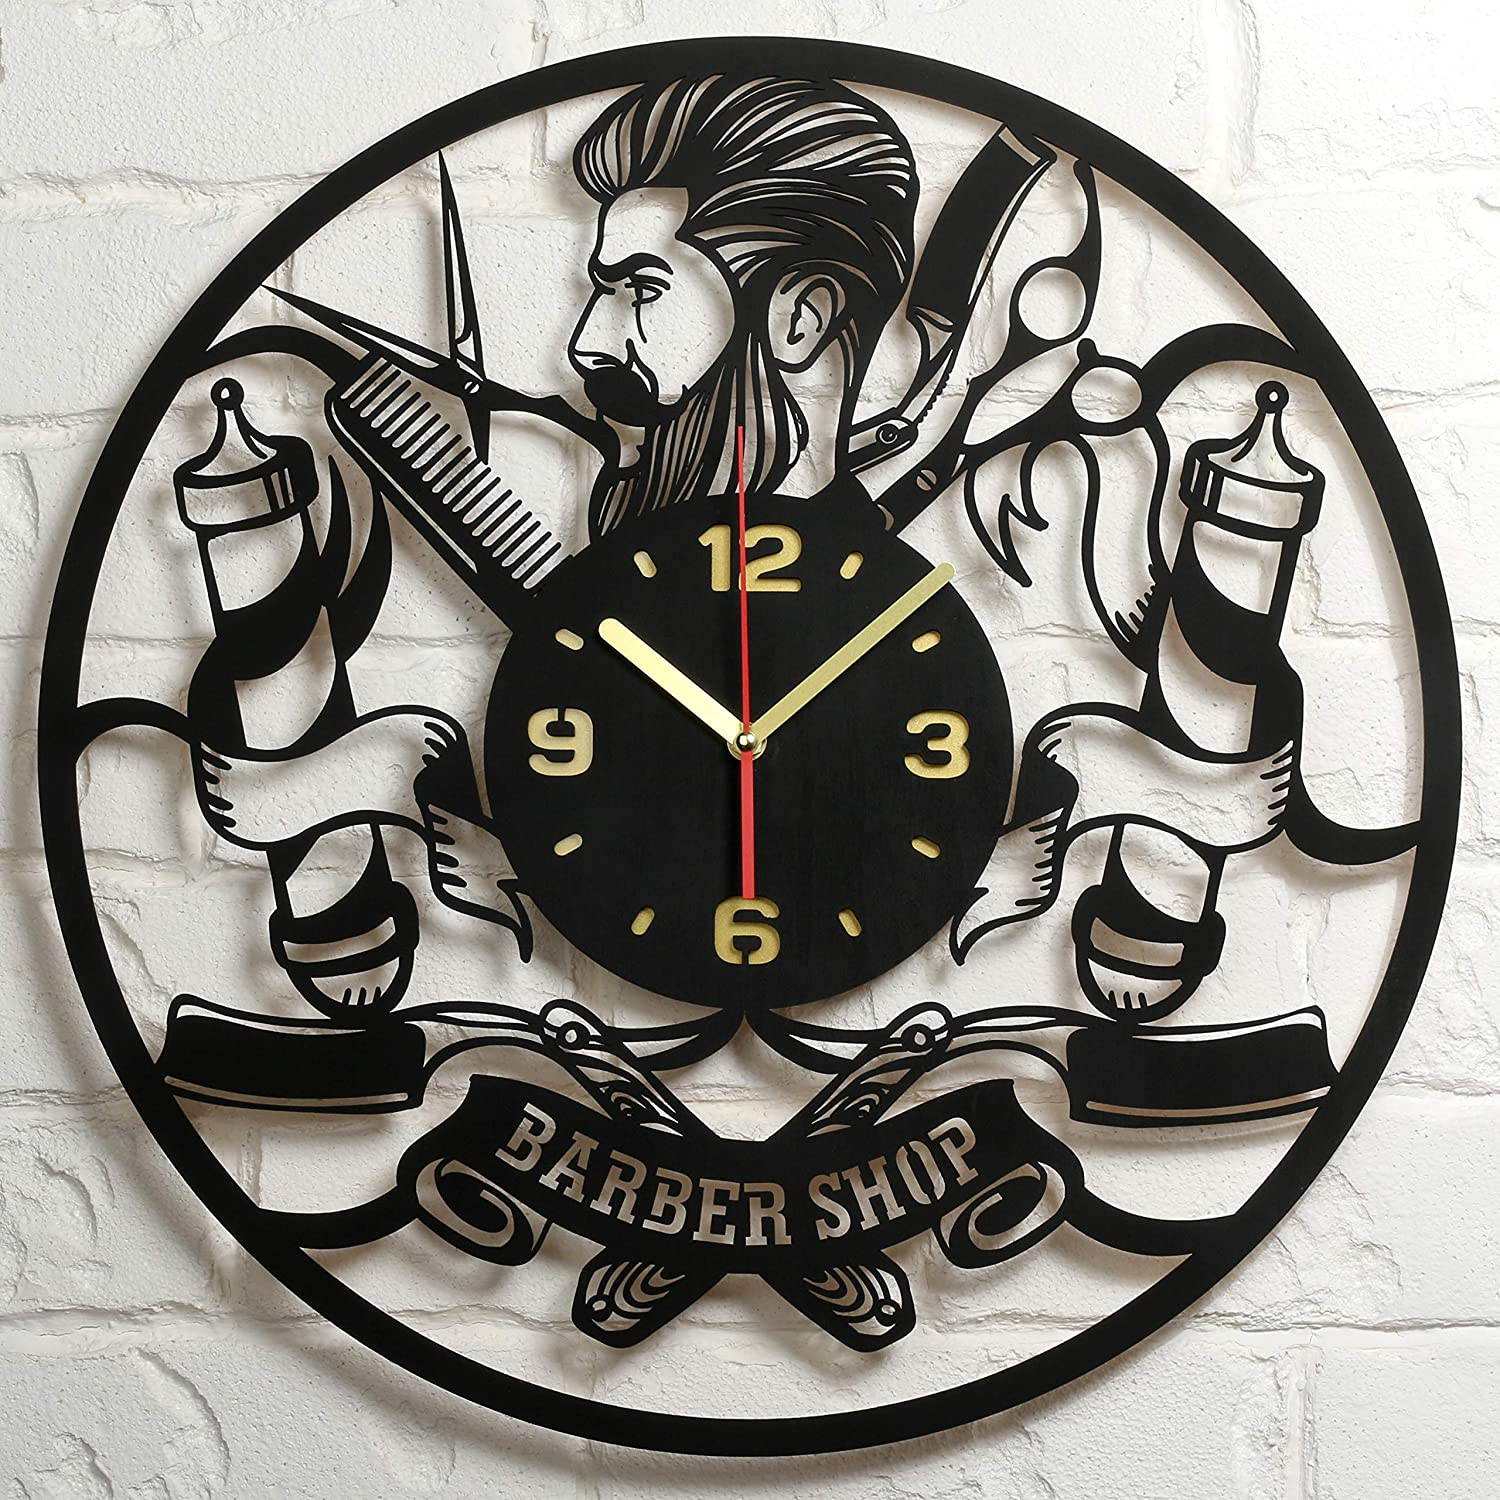 Barbershop Clock Large Wood Wall Clock 16 Inch Hairdresser Barber Clock Hair Stylist Hair Salon Gifts for Women Men Barbers Retro Vintage Old Barber Shop Wall Decor Art Decorations Clock Gift Black